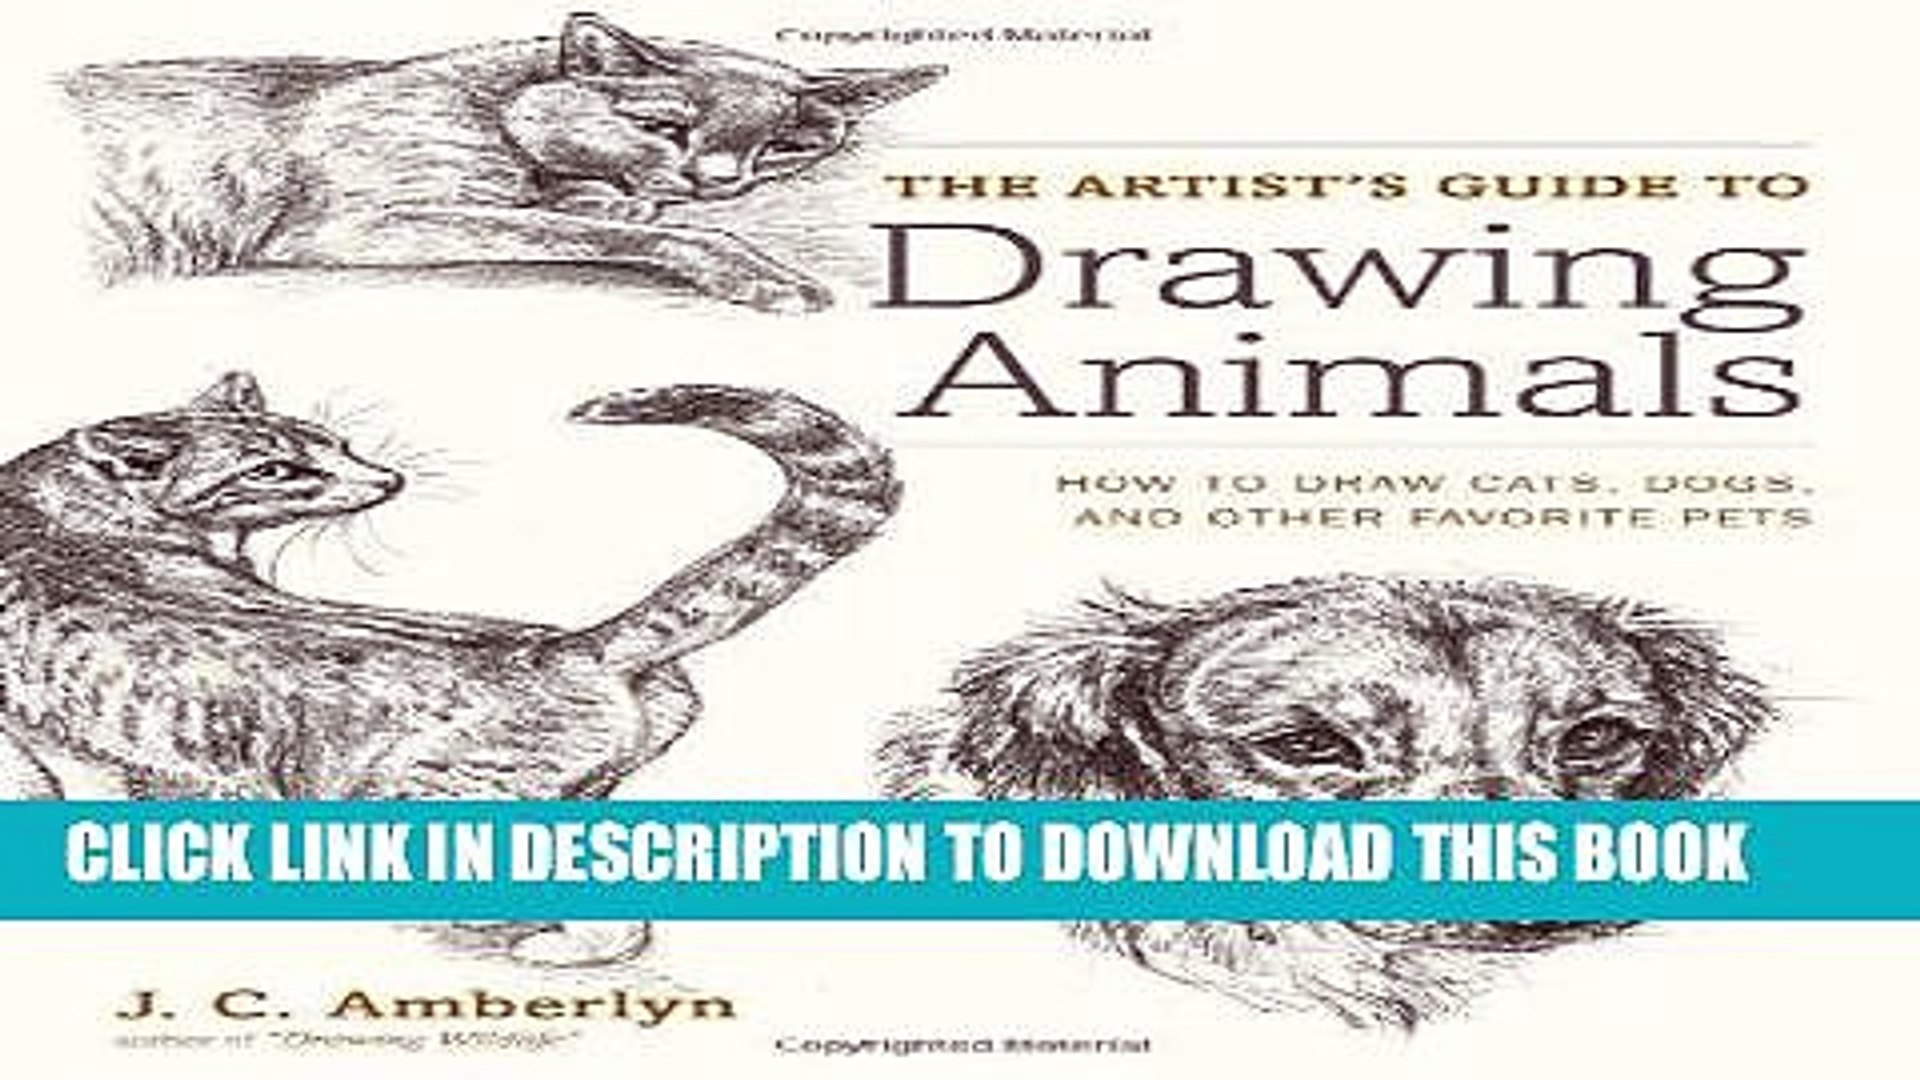 Ebook The Artist s Guide to Drawing Animals: How to Draw Cats, Dogs, and Other Favorite Pets Free